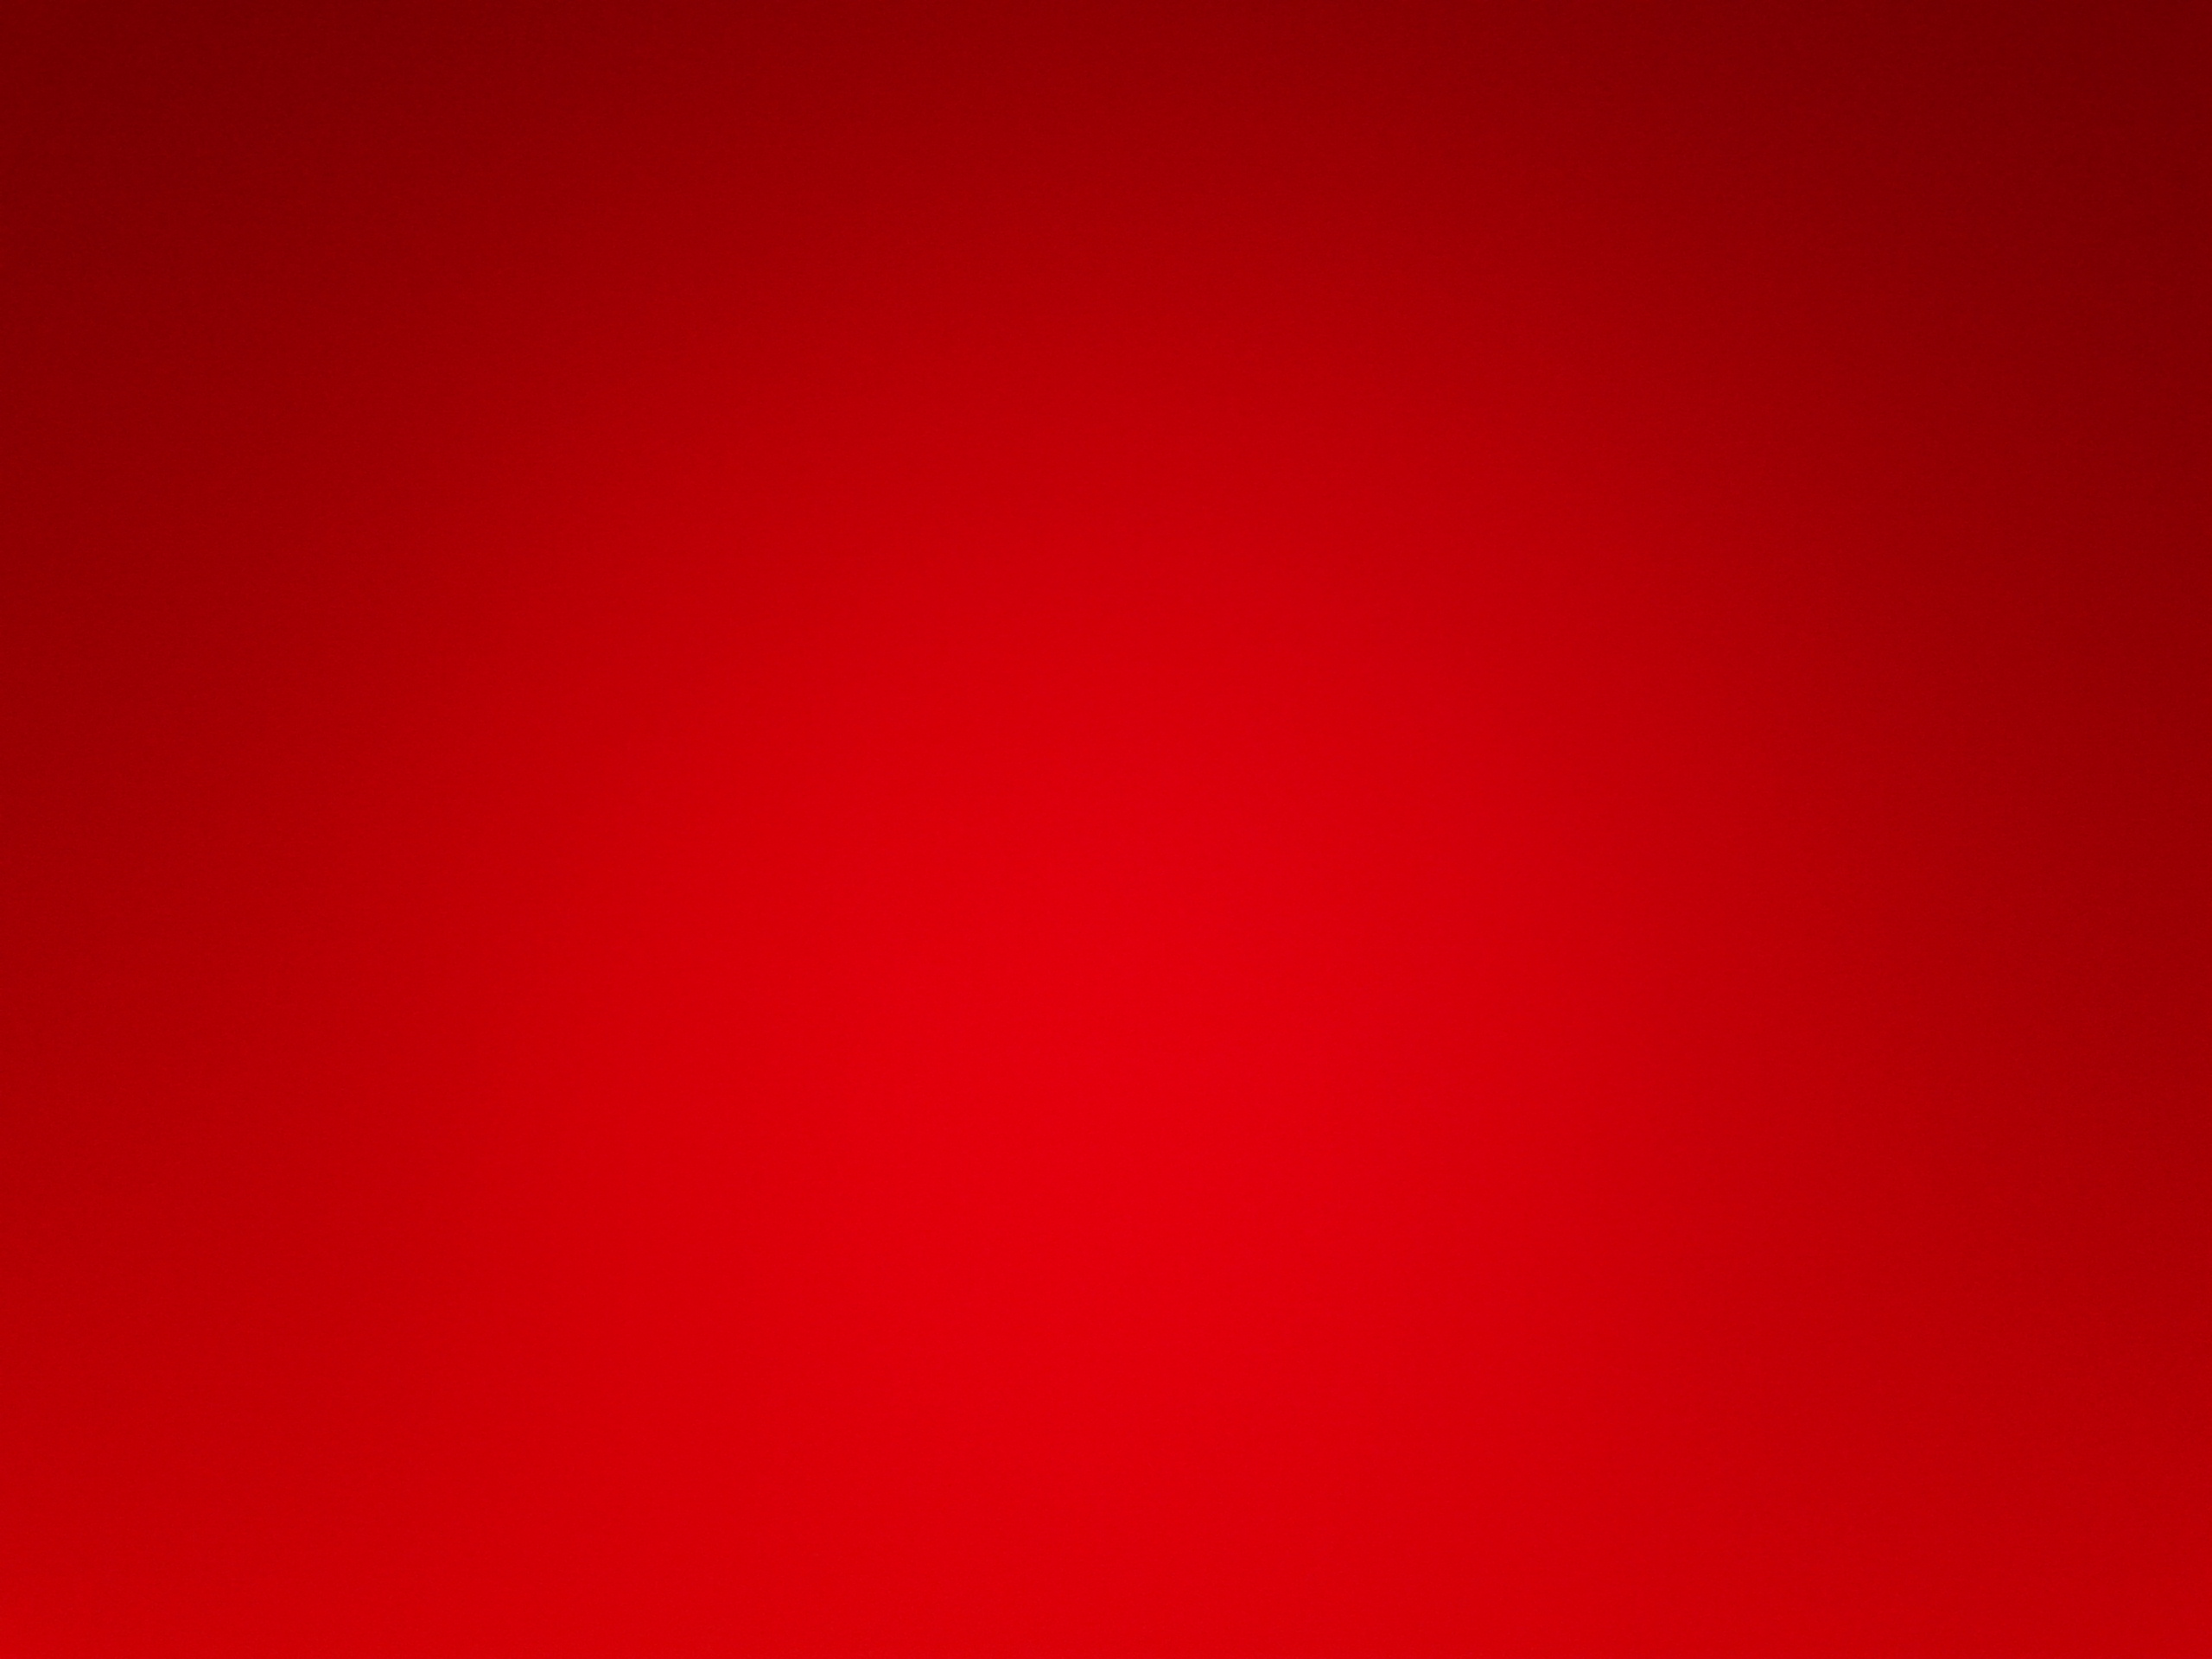 Red Pictures, Creative Red Wallpapers - #WP:QG58 GZHaixieR